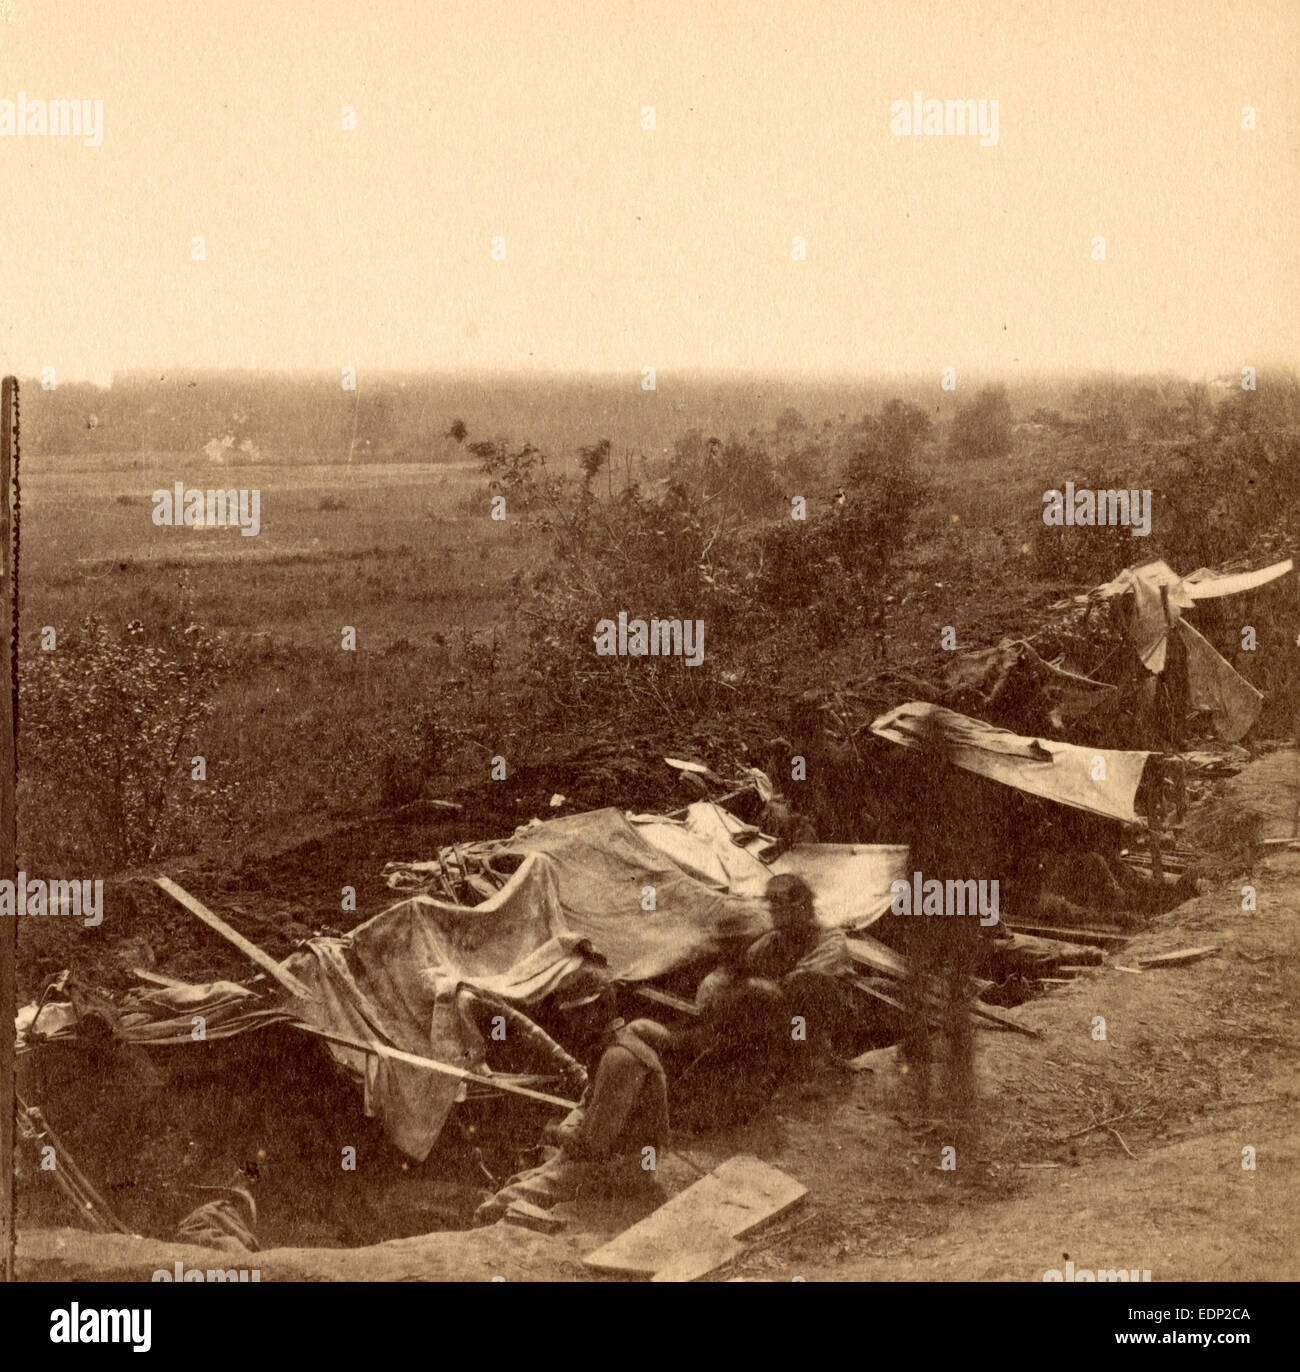 Our boys in the trenches, USA, US, Vintage photography - Stock Image